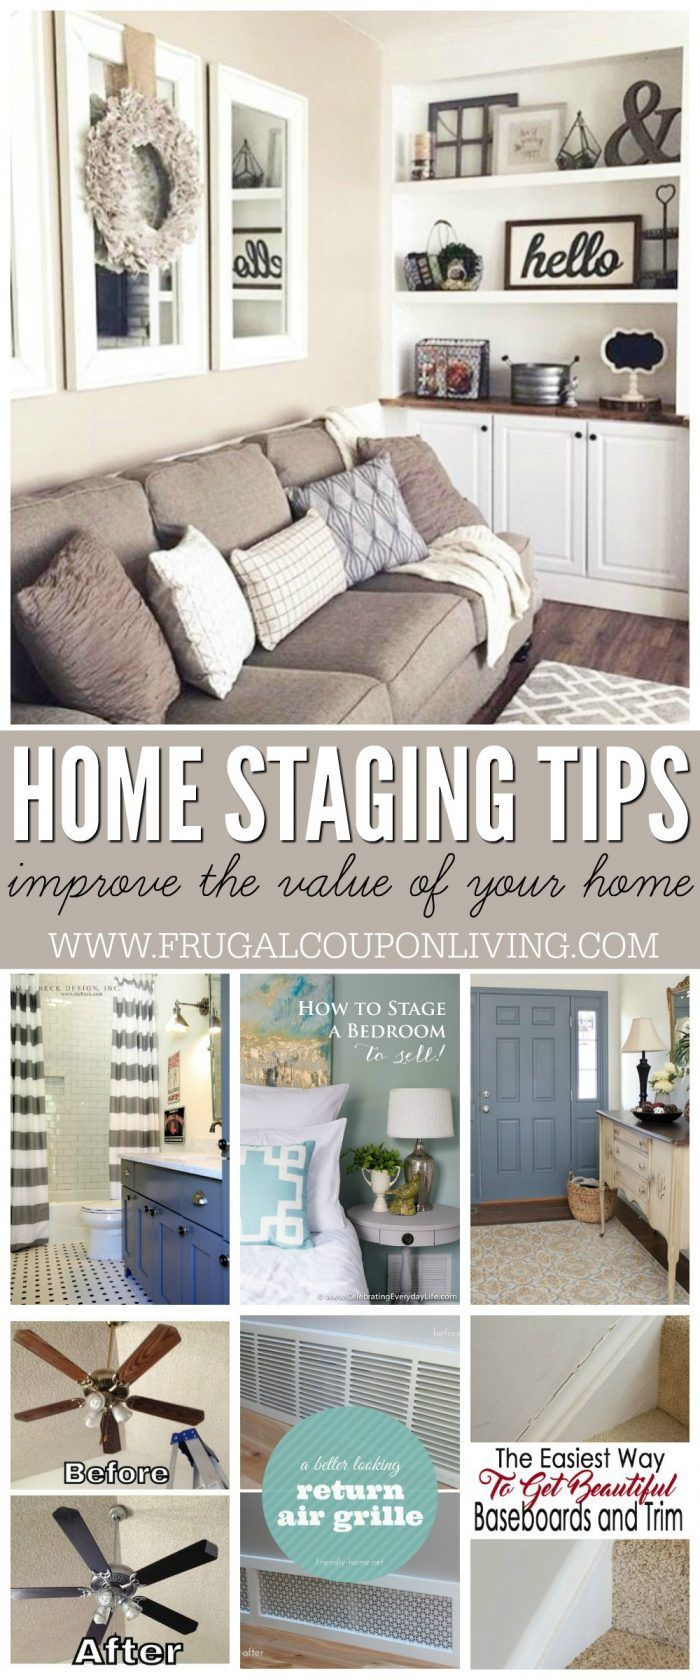 Awesome Frugal Home Decorating Ideas Part - 10: Explore House Staging Ideas And More!